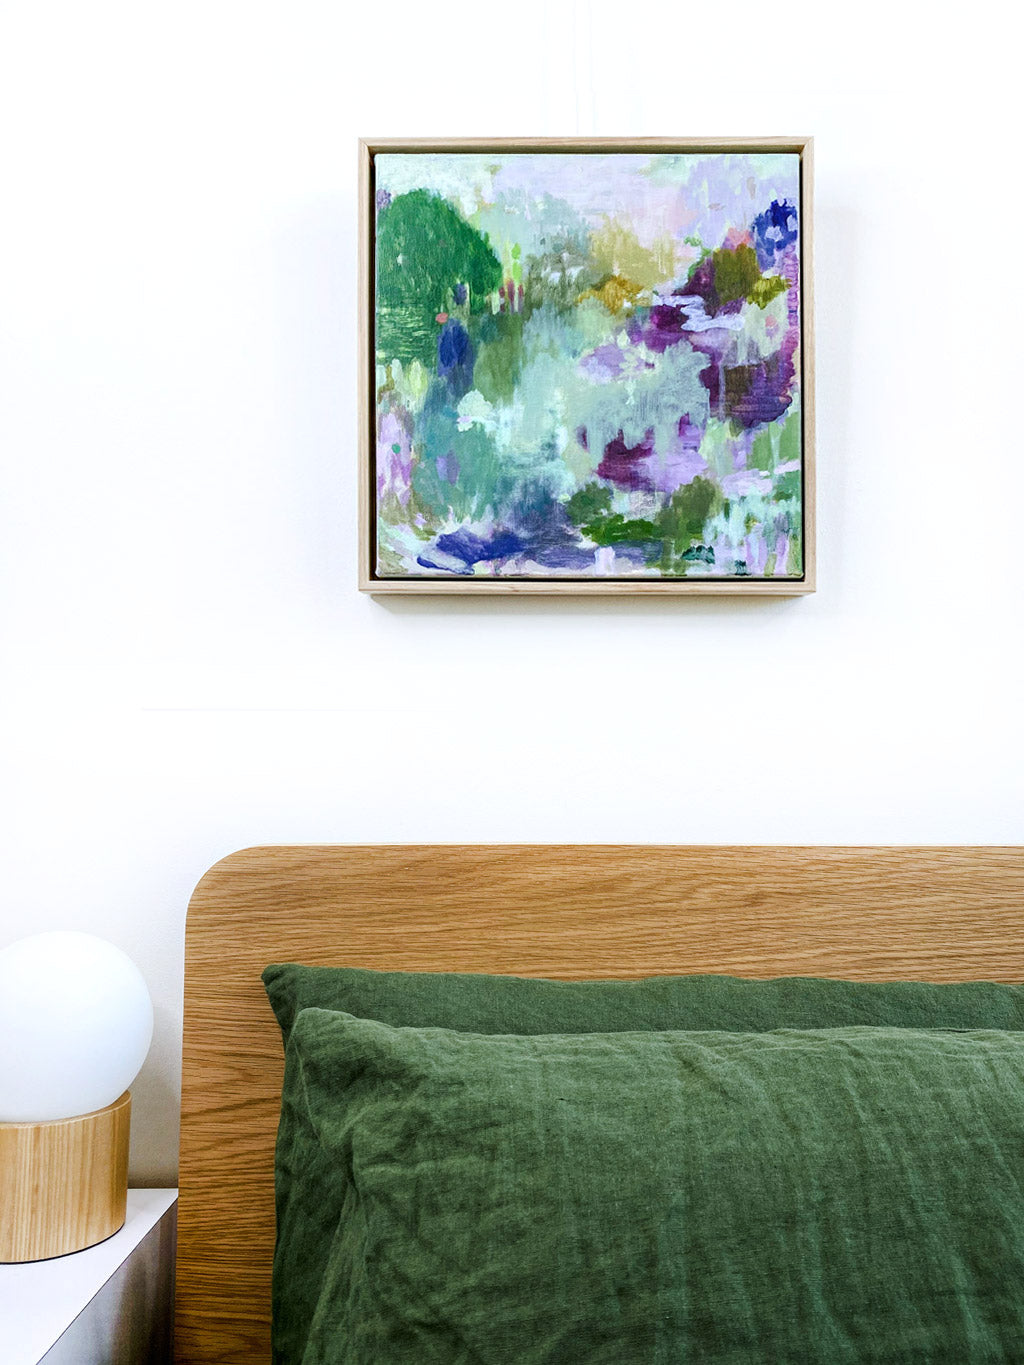 abstract landscape painting original artwork styled above bed in bedroom in situ acrylic on canvas square format sage purple mustard green lime olive pastel palette belinda marshall